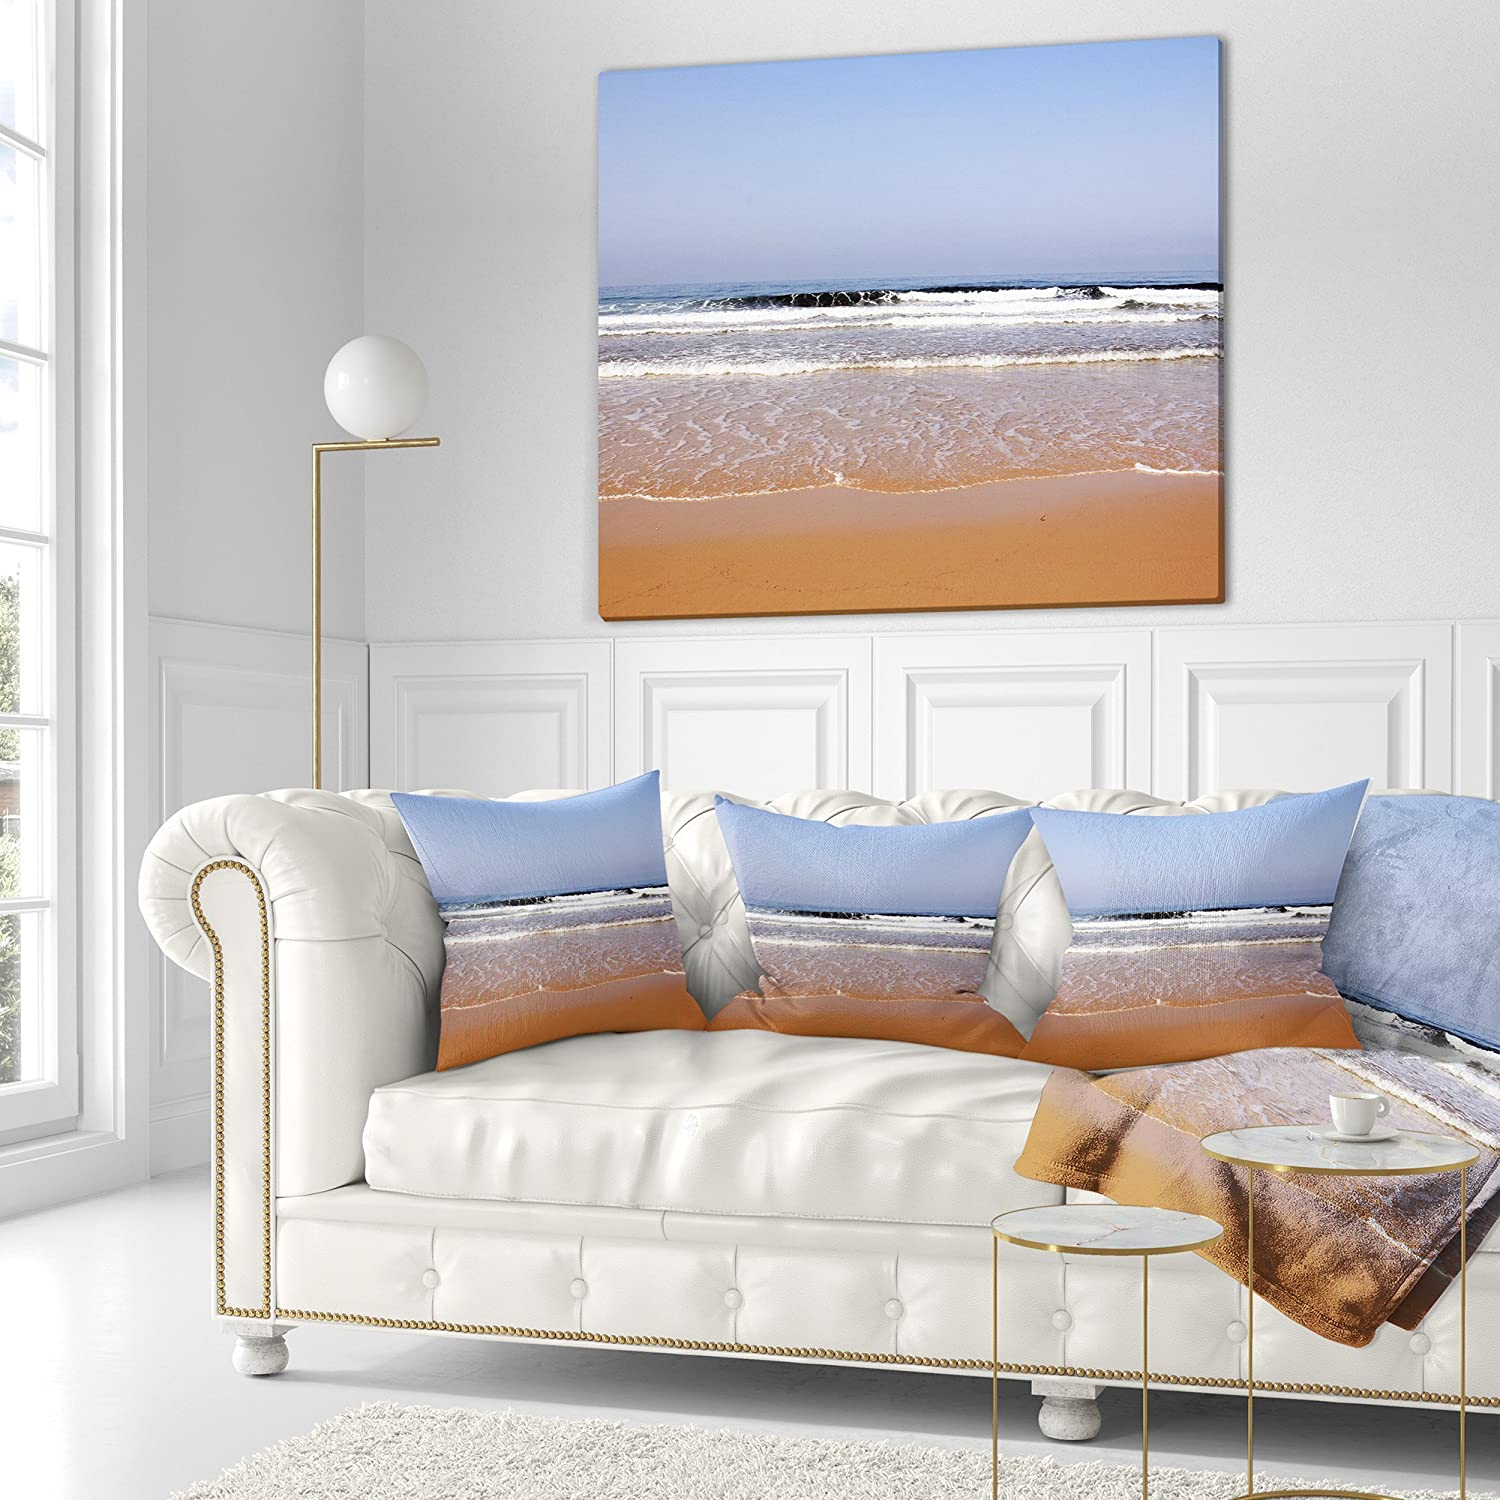 Designart CU10709-18-18 Beautiful Sea and Beach Ashdod Israel Seashore Cushion Cover for Living Room x 18 in in Insert Printed On Both Side Sofa Throw Pillow 18 in